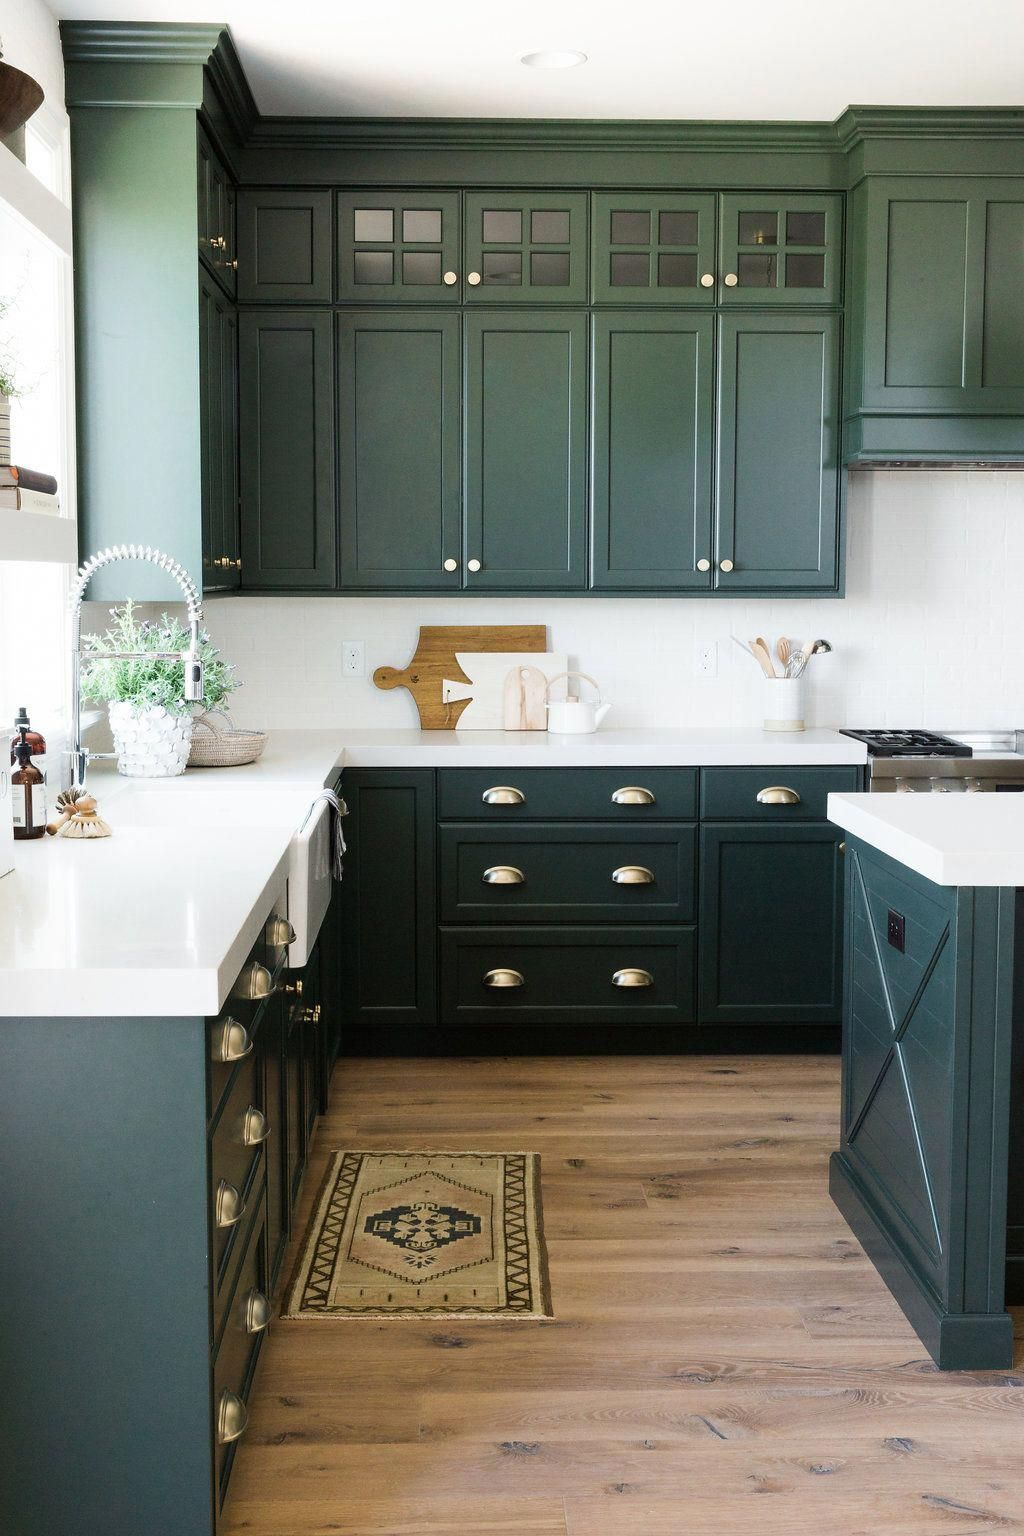 Beautiful Dark Green Kitchen Cabinets With White Counters Wood Floors Tour Part One Kitchen Cabinet Inspiration Green Kitchen Cabinets Dark Green Kitchen